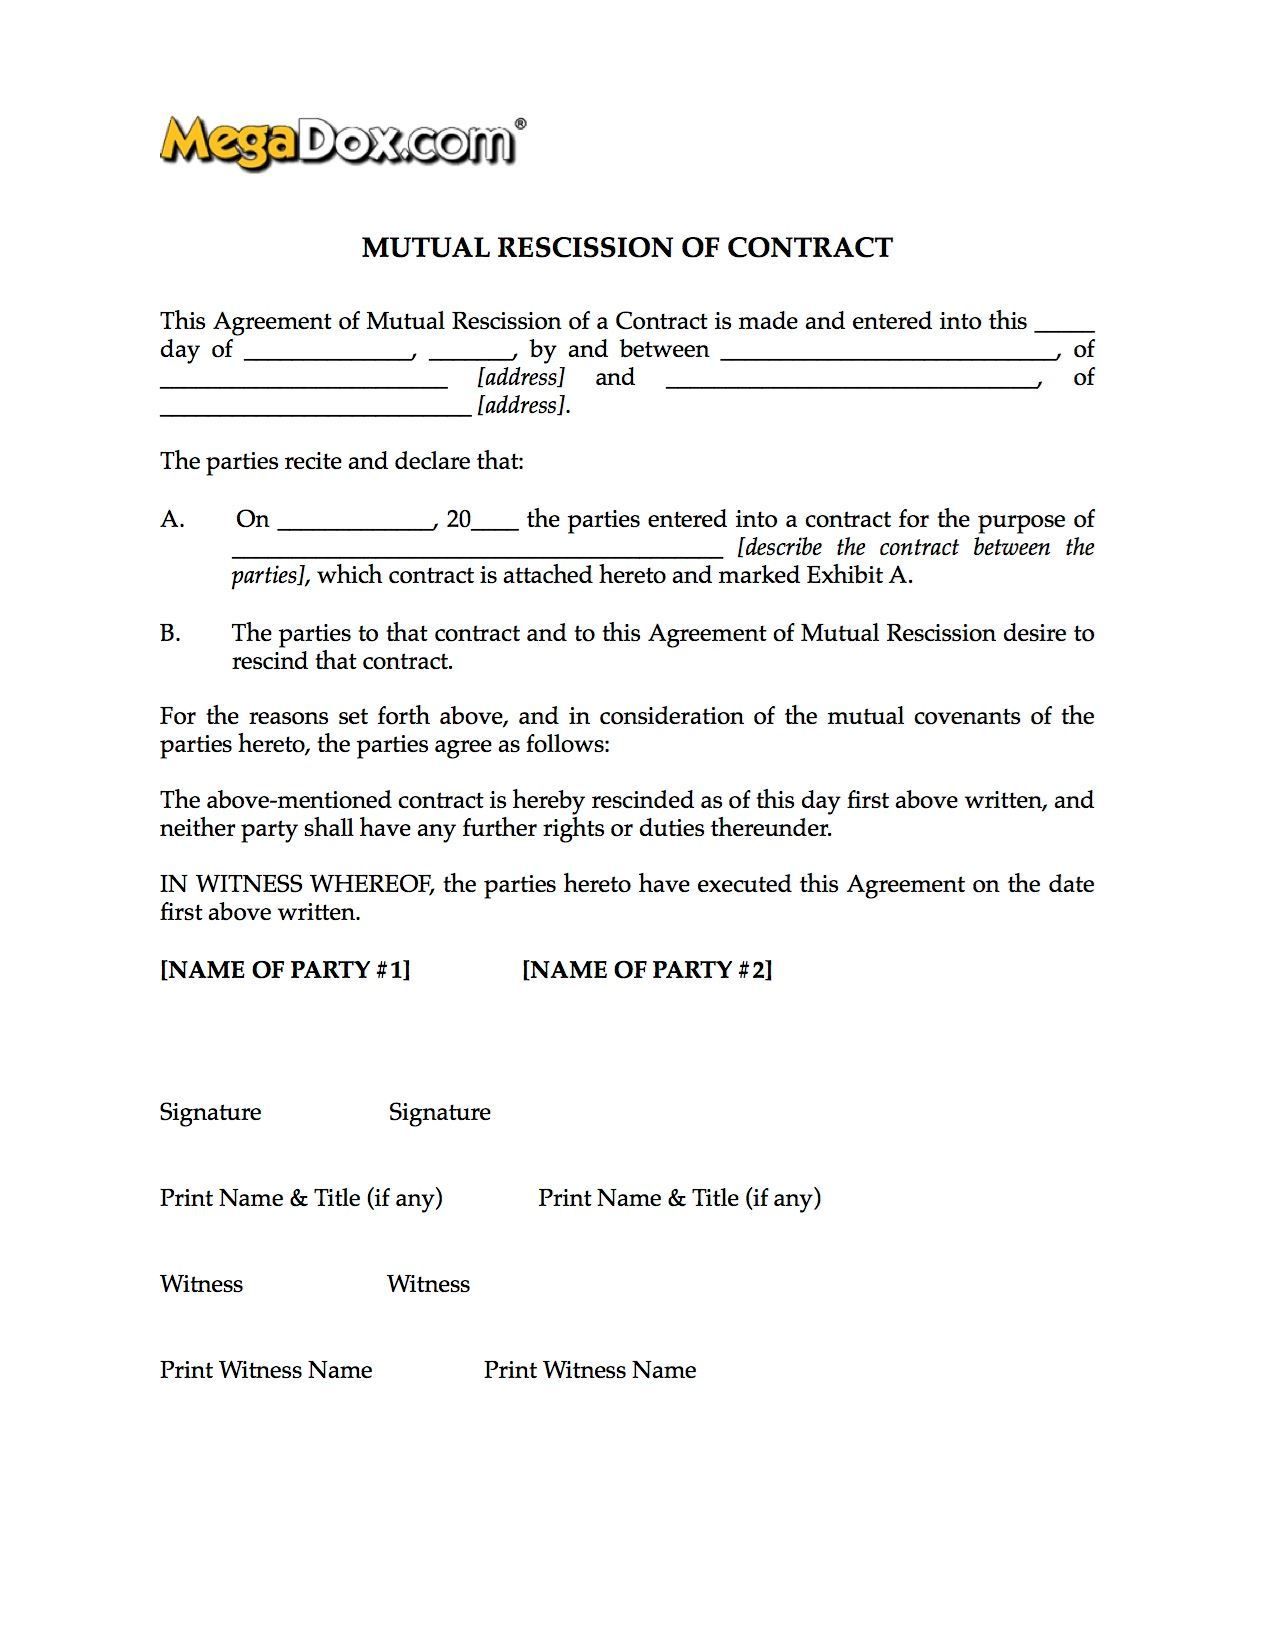 mutual rescission of contract form legal forms and business mutual rescission of contract form